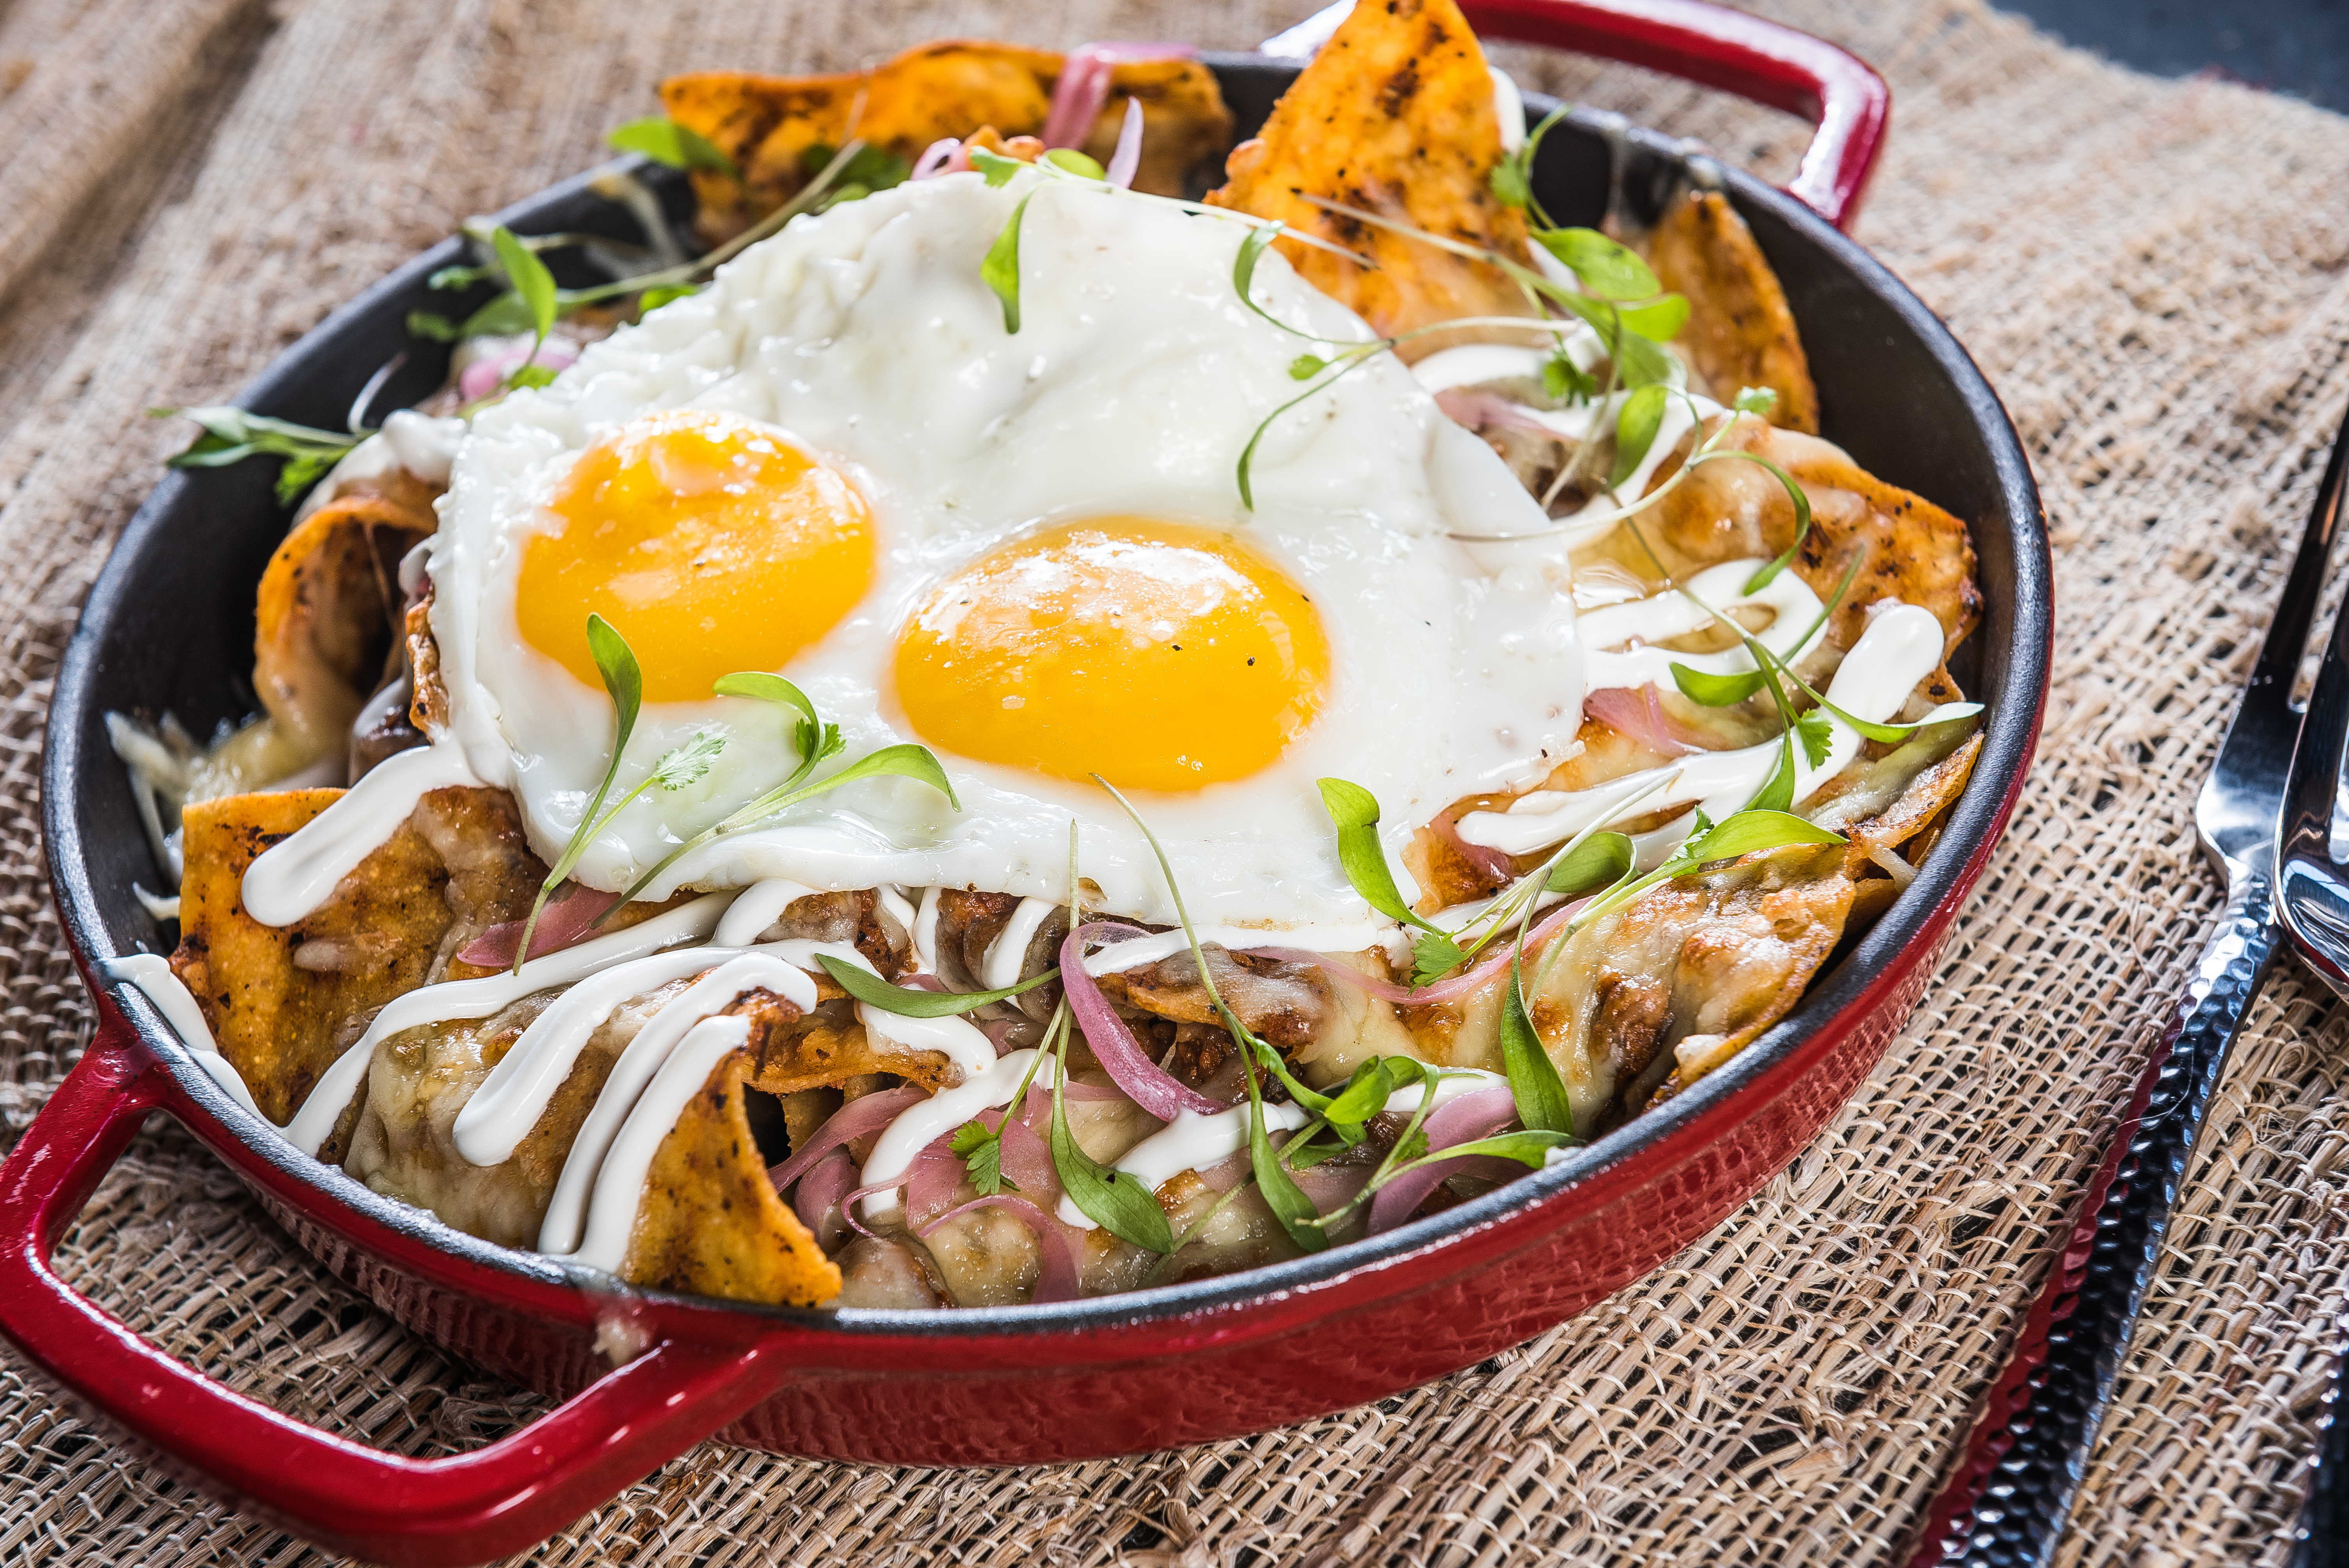 Chilaquiles at Guapo's in Georgetown.{ }(Image: Rey Lopez)